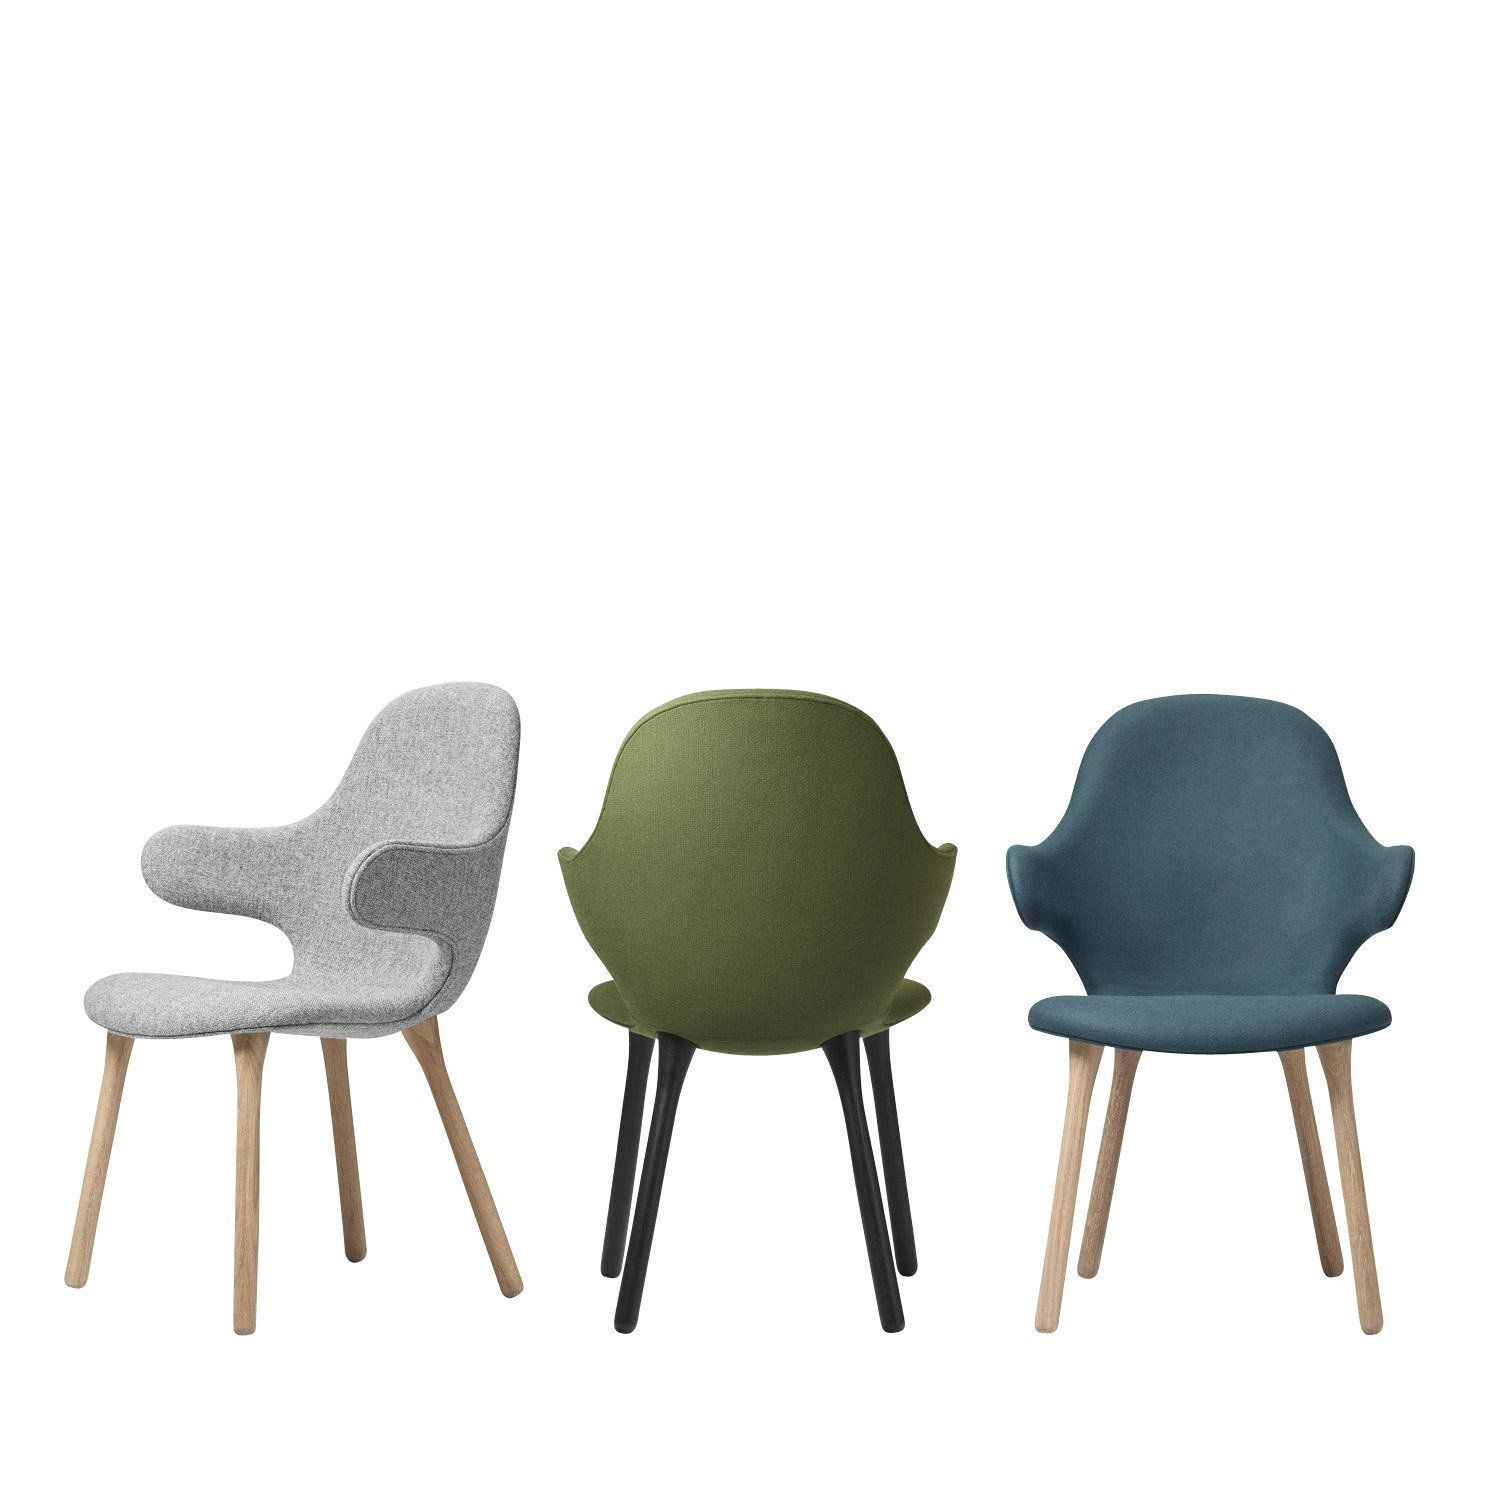 Catch chair jh1 stuhl gestell eiche tradition for Stuhl design entwicklung